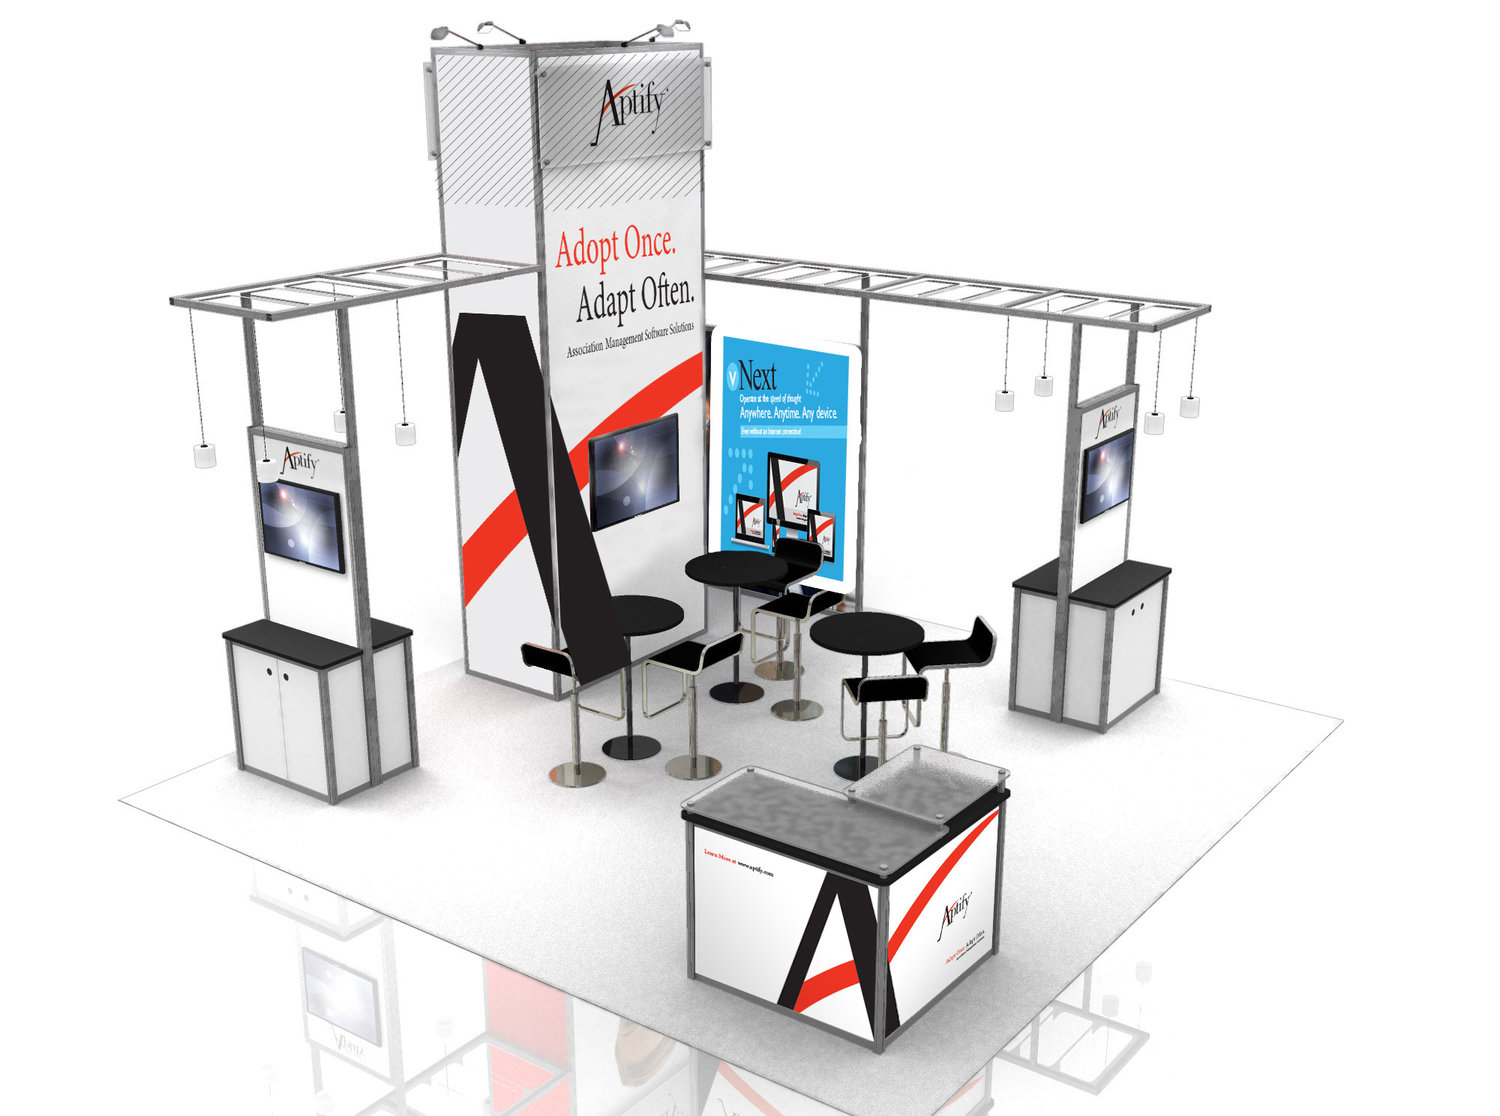 Aptify Booth Redesign